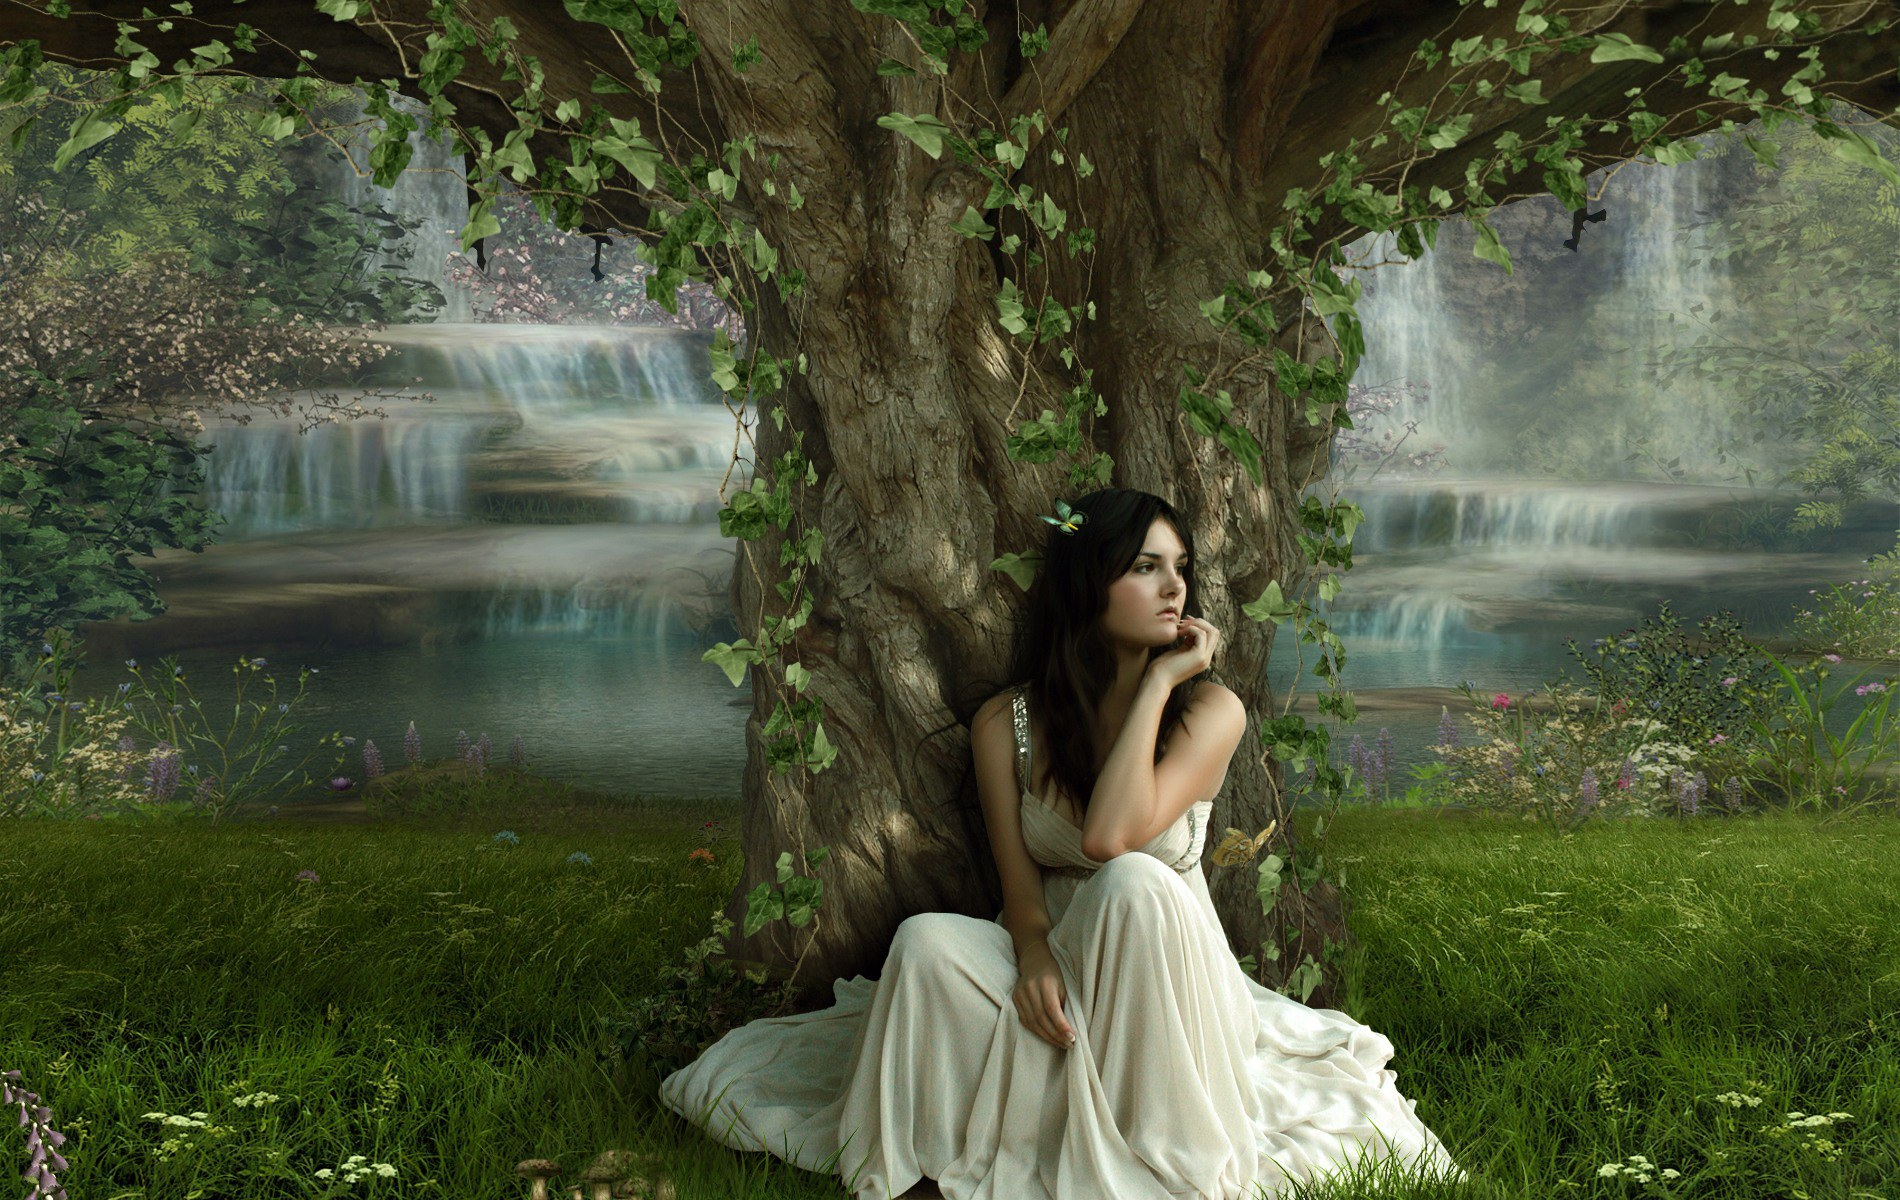 Sad Girl wallpaper under a huge tree 1920x1200 Wallpapers 3d for 1900x1200